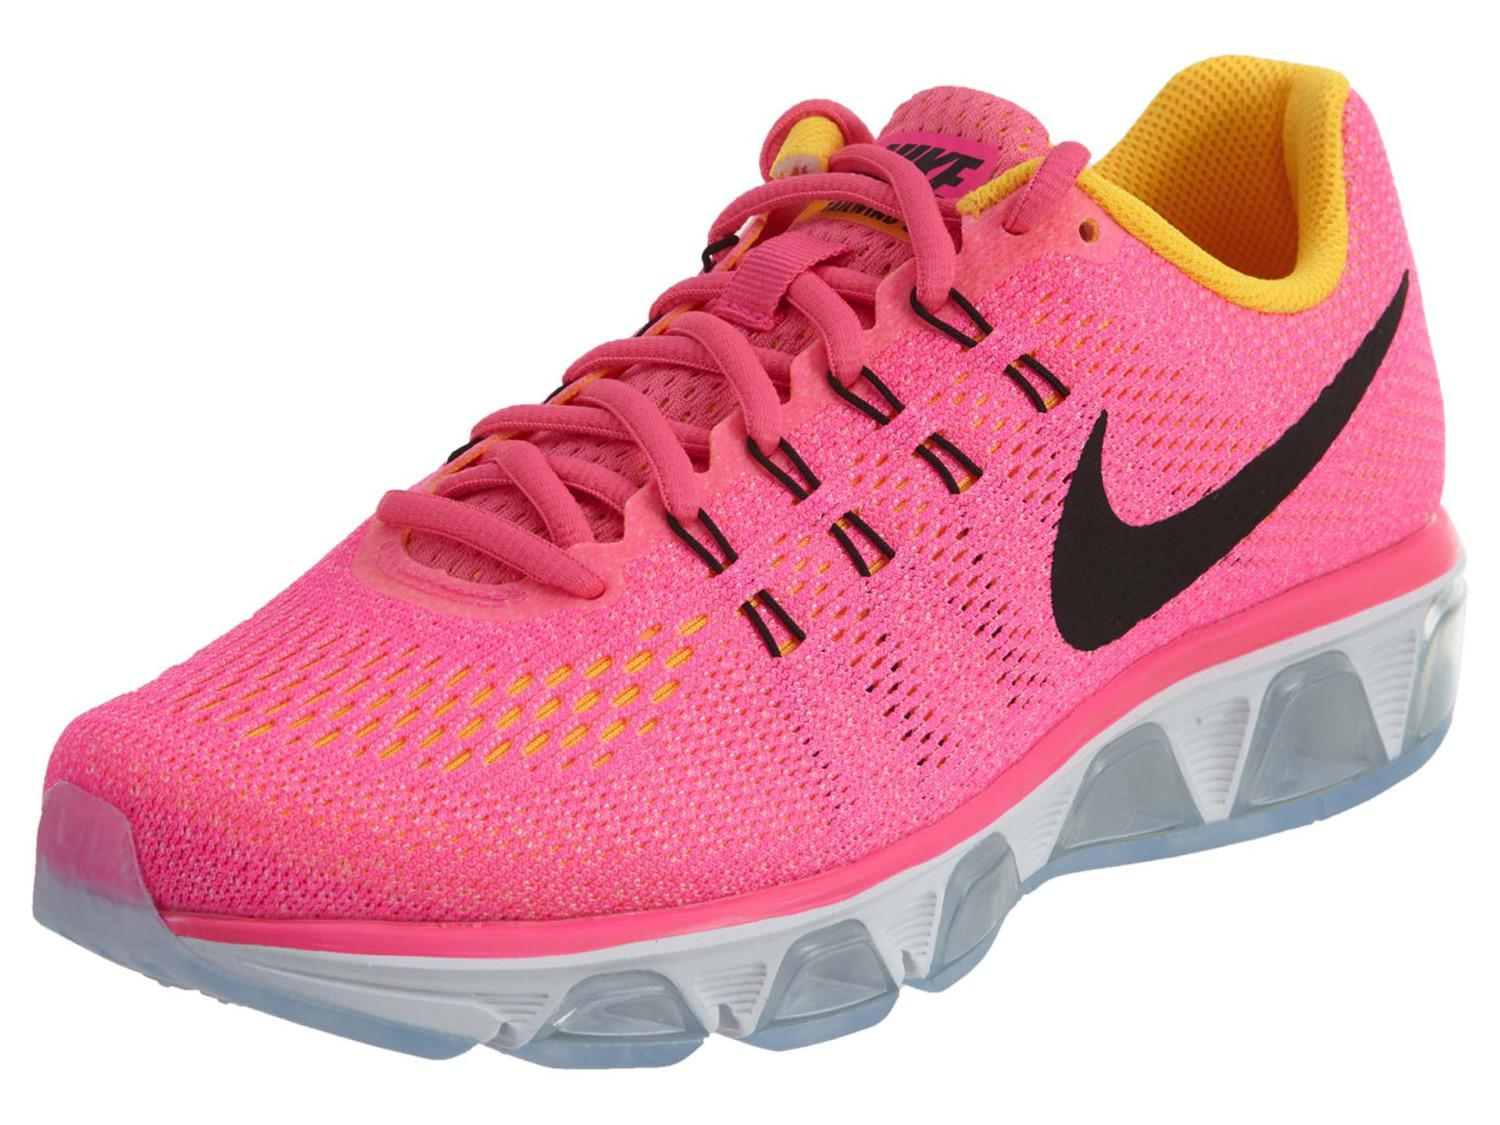 7bbdf95dfc Nike Air Max Tailwind 8 Running Shoes 805942-601 in Pink - Lyst